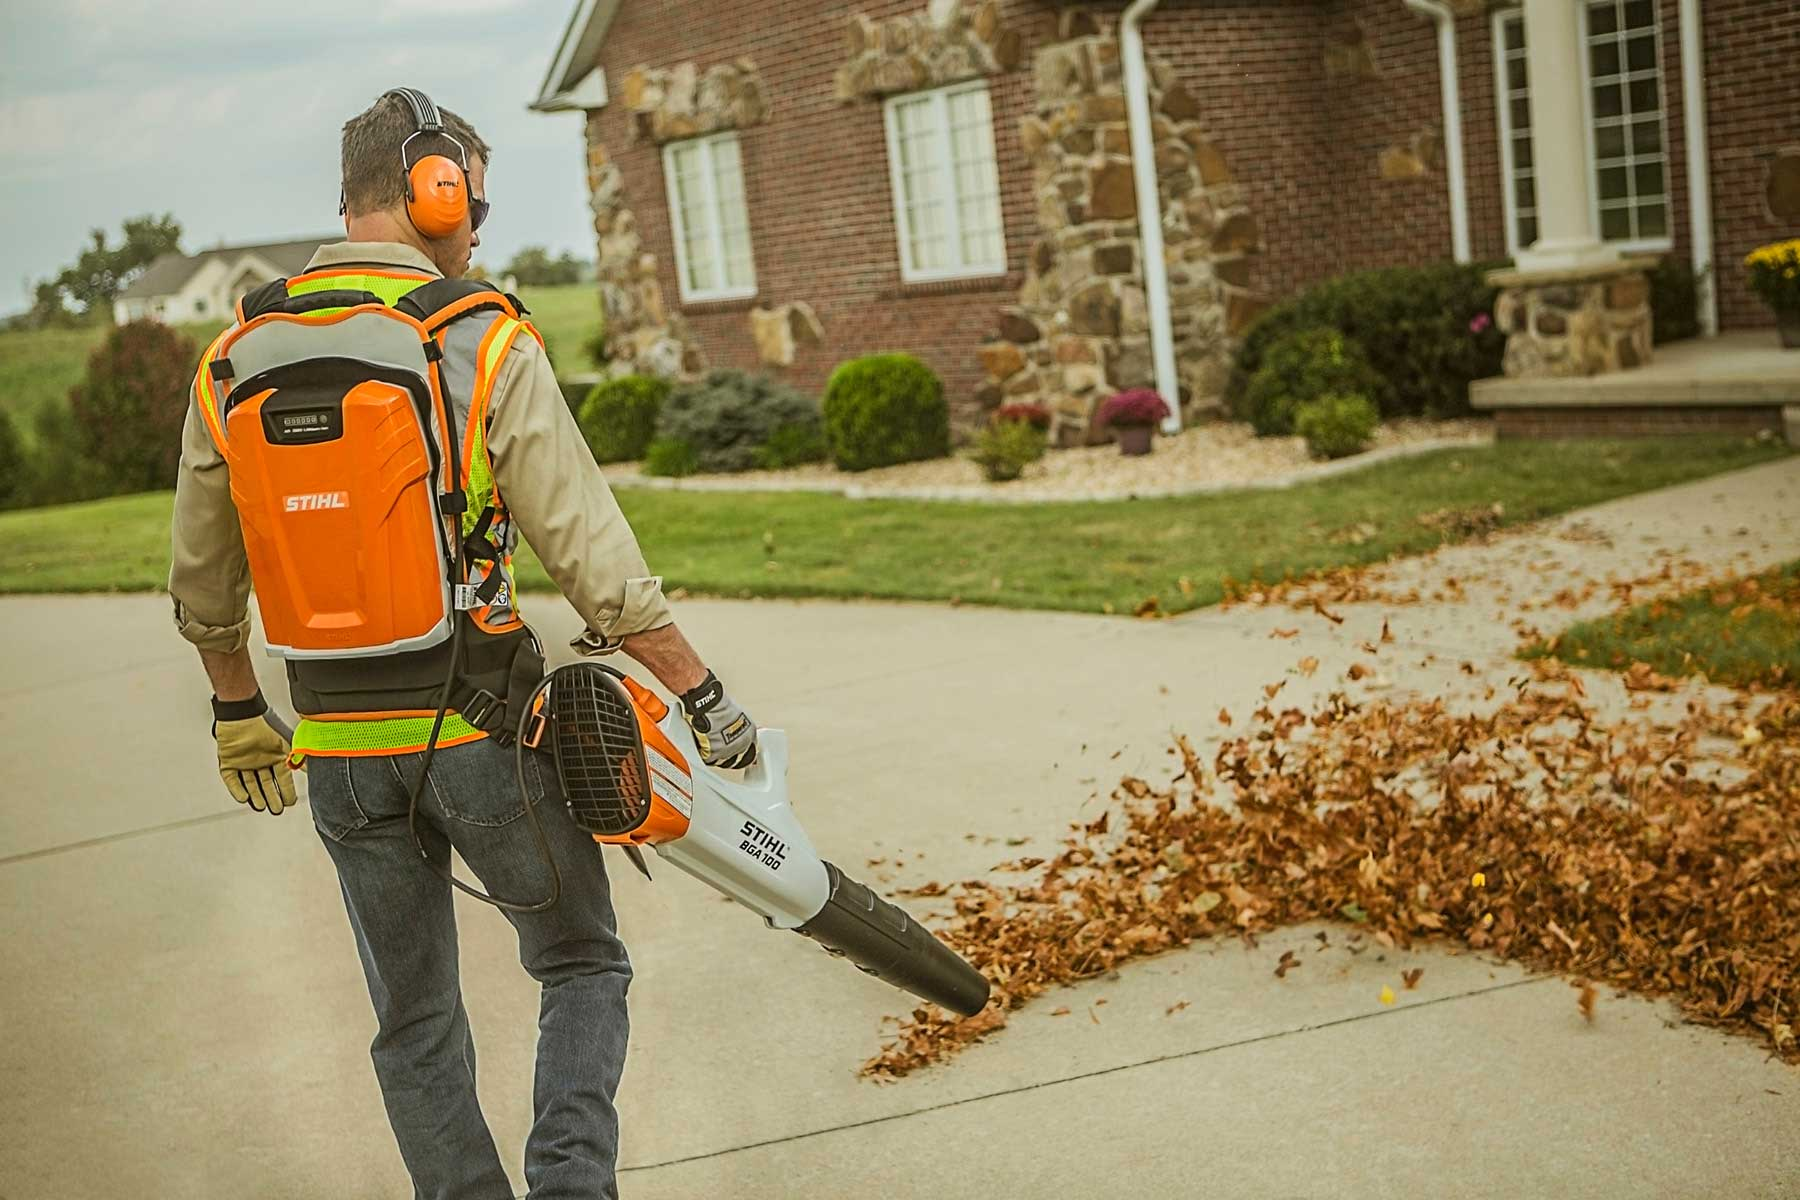 Mini Cordless Leaf Blowers